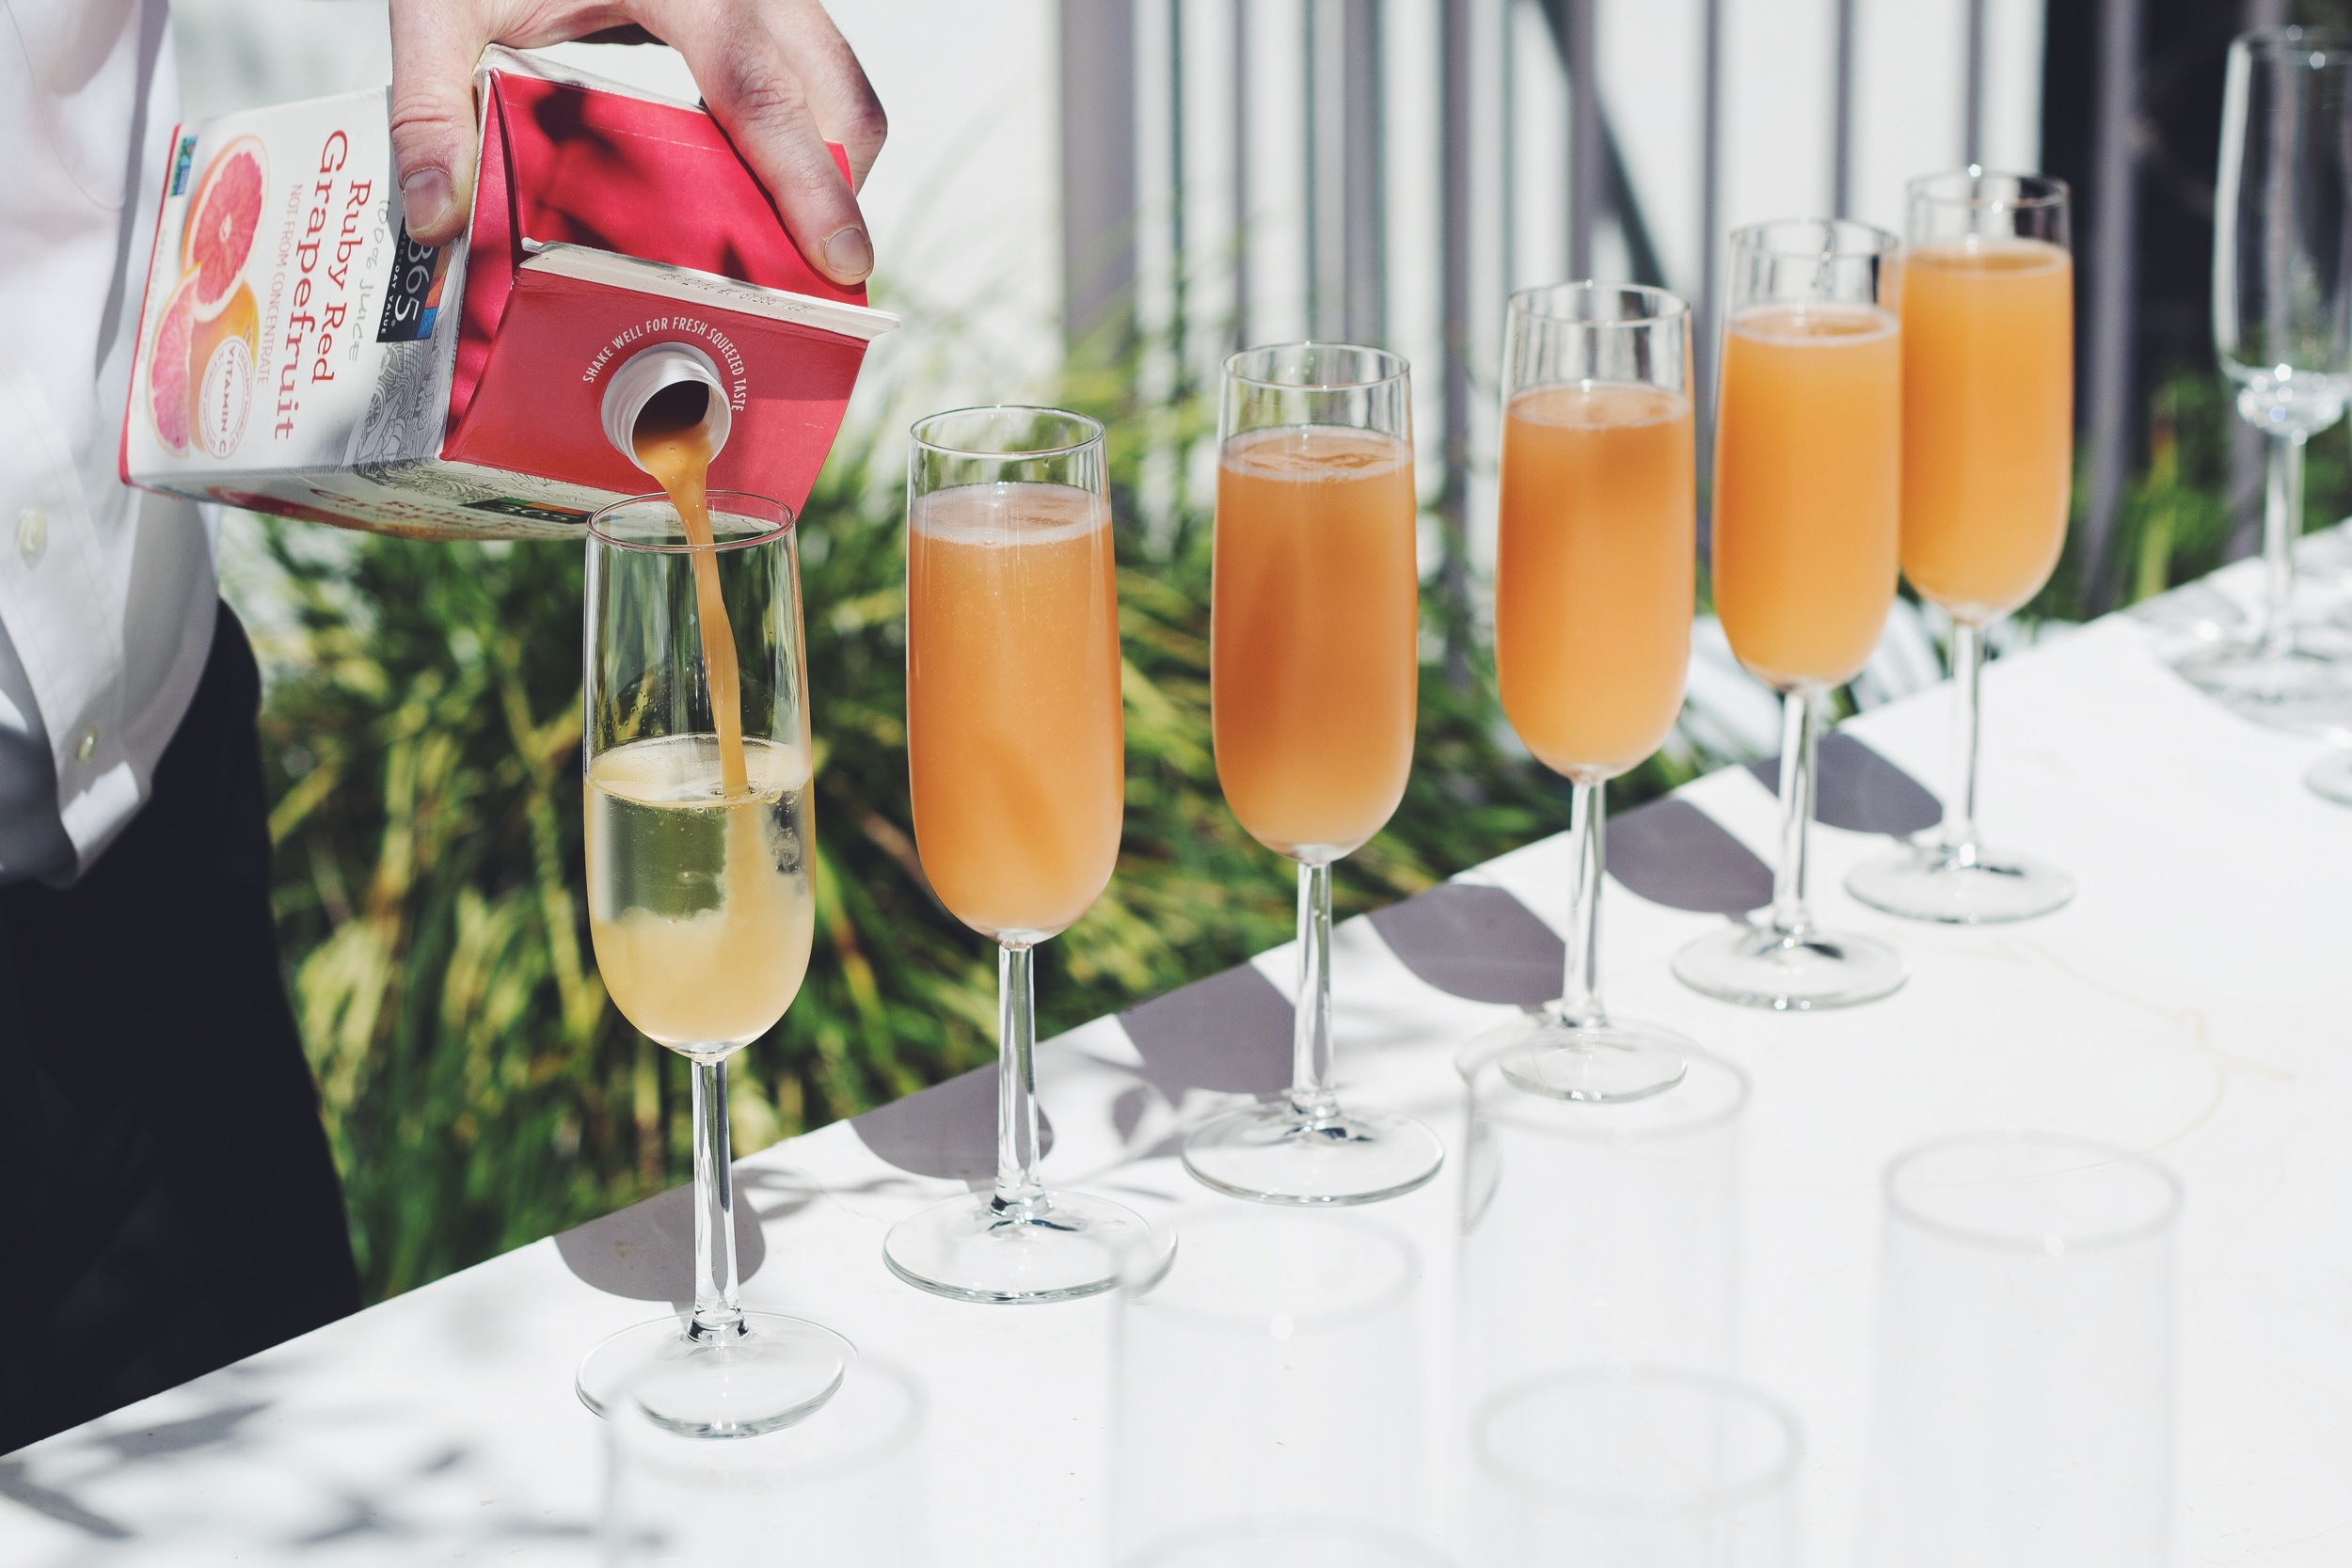 The ultimate brunch drink: Grapefruit Mimosas with a splash of St. Germain.